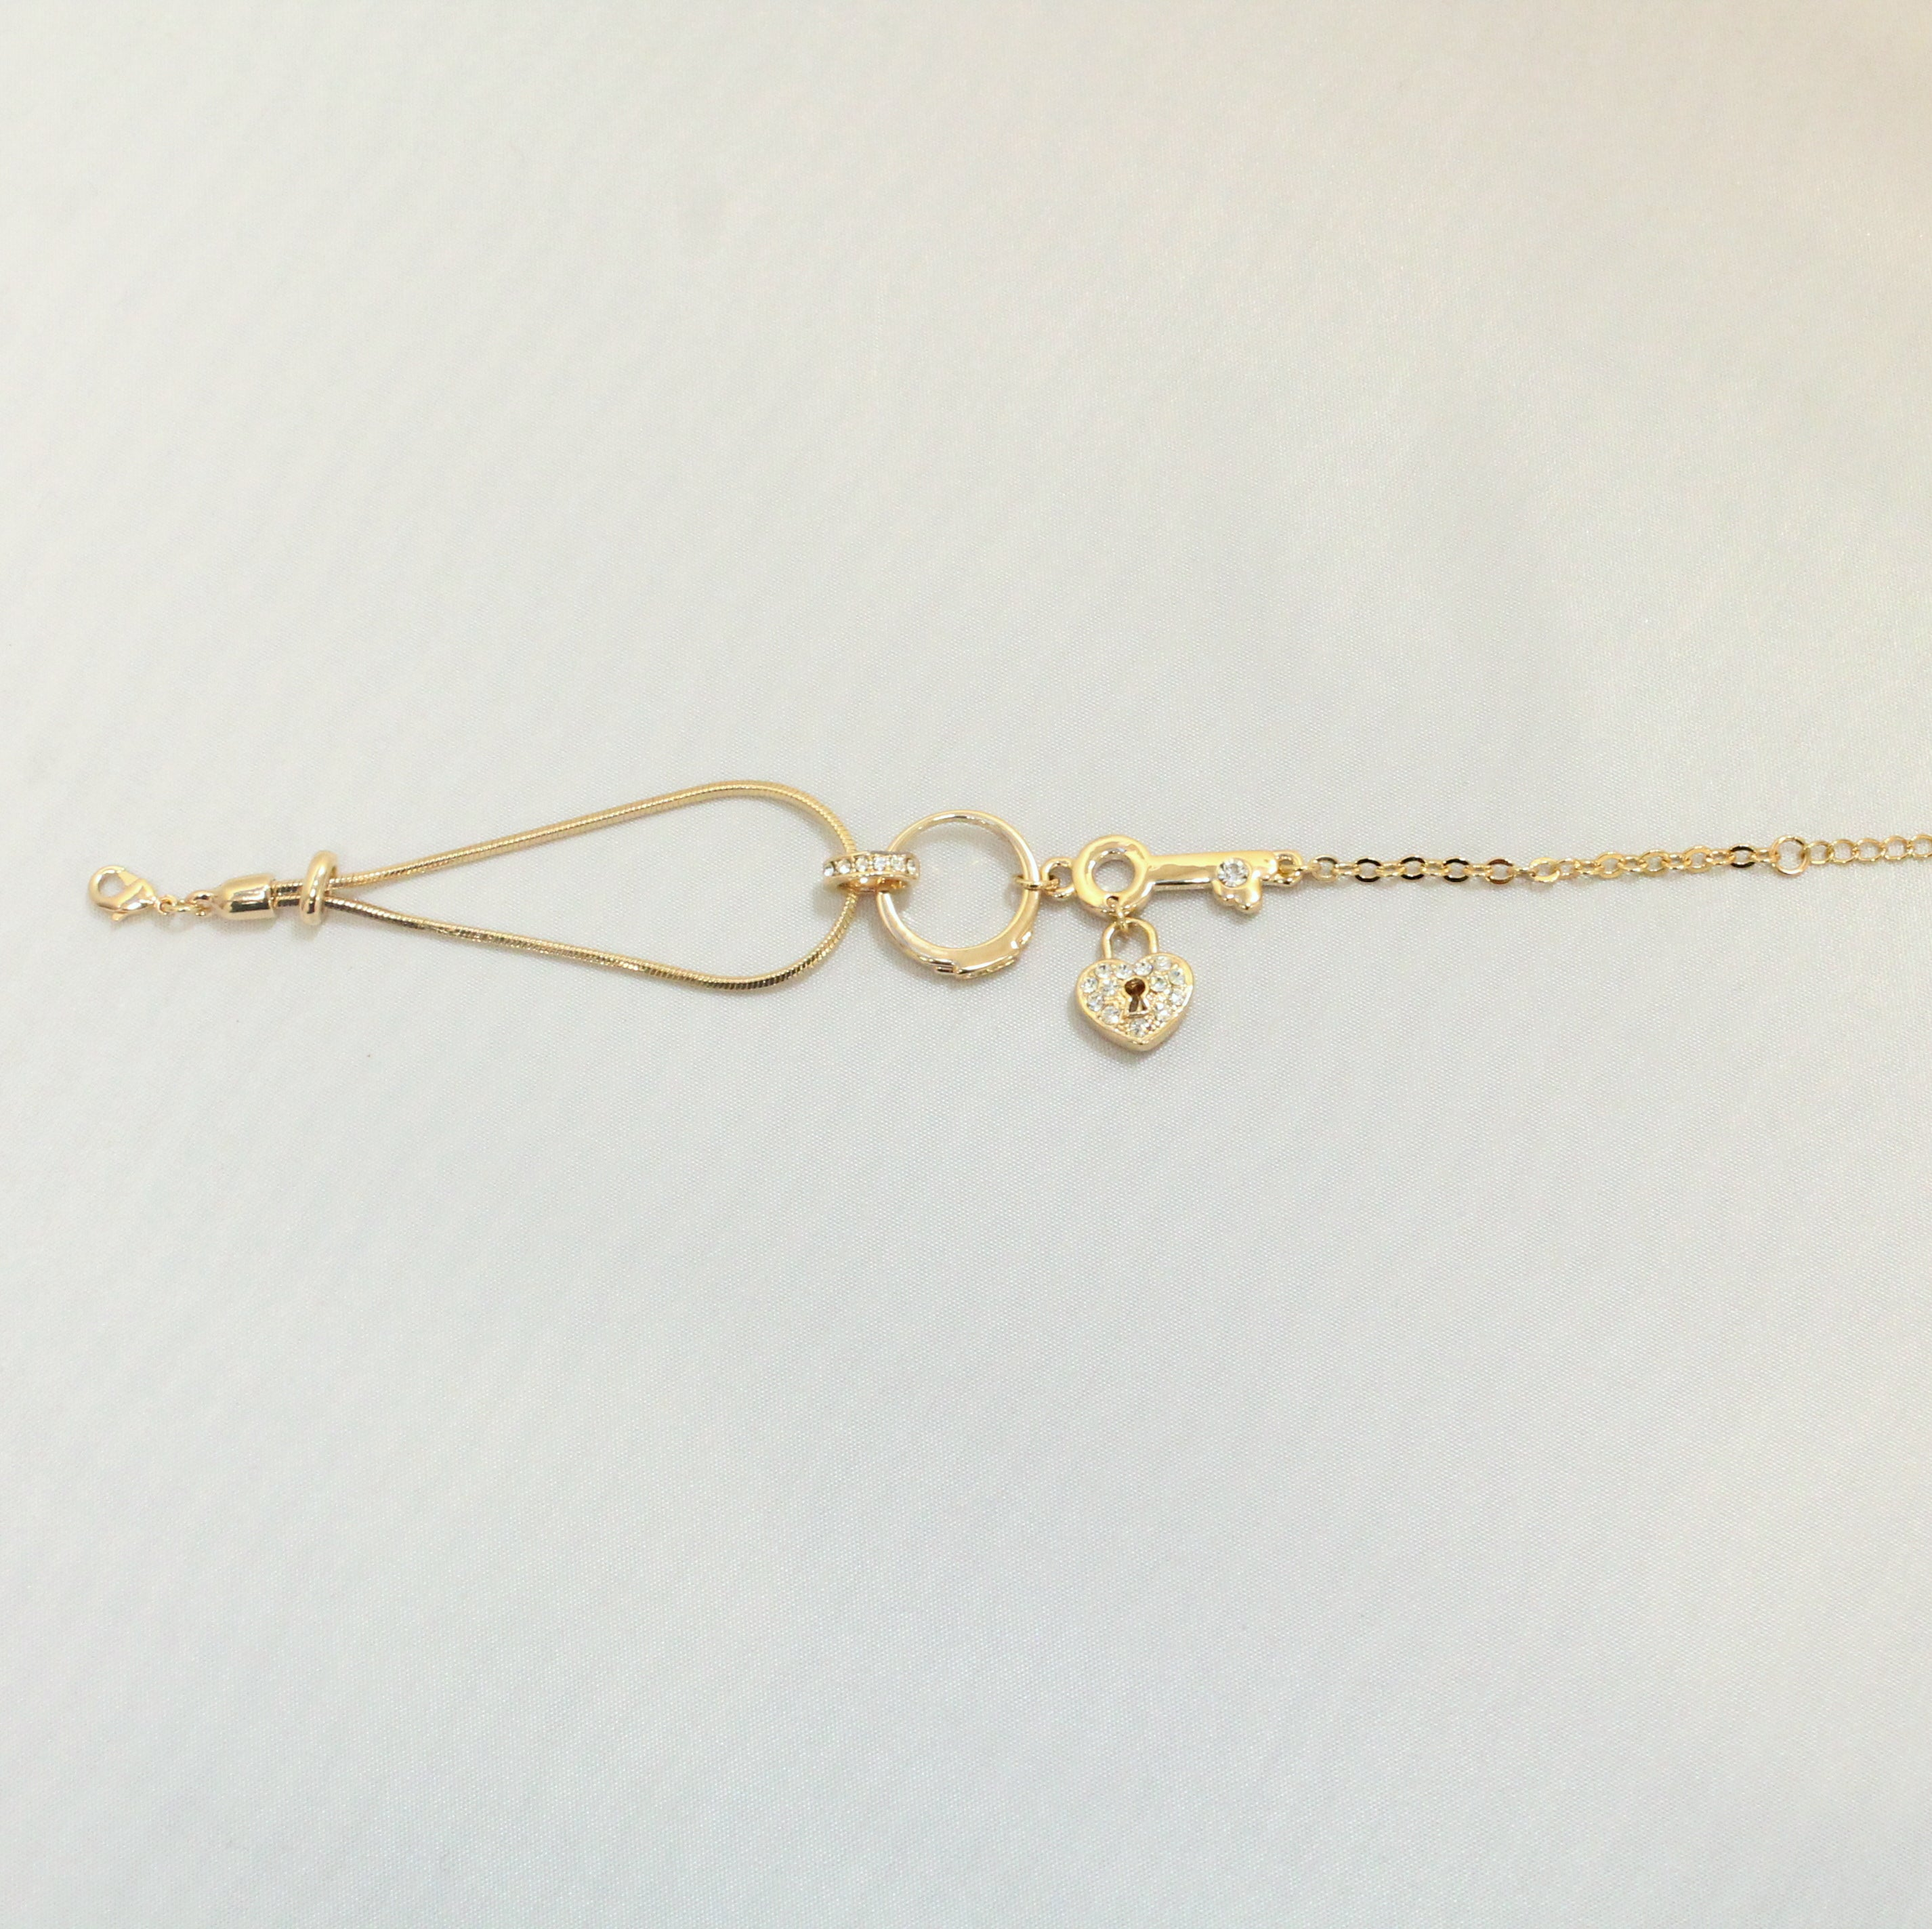 Lock & Key - Gold bracelet